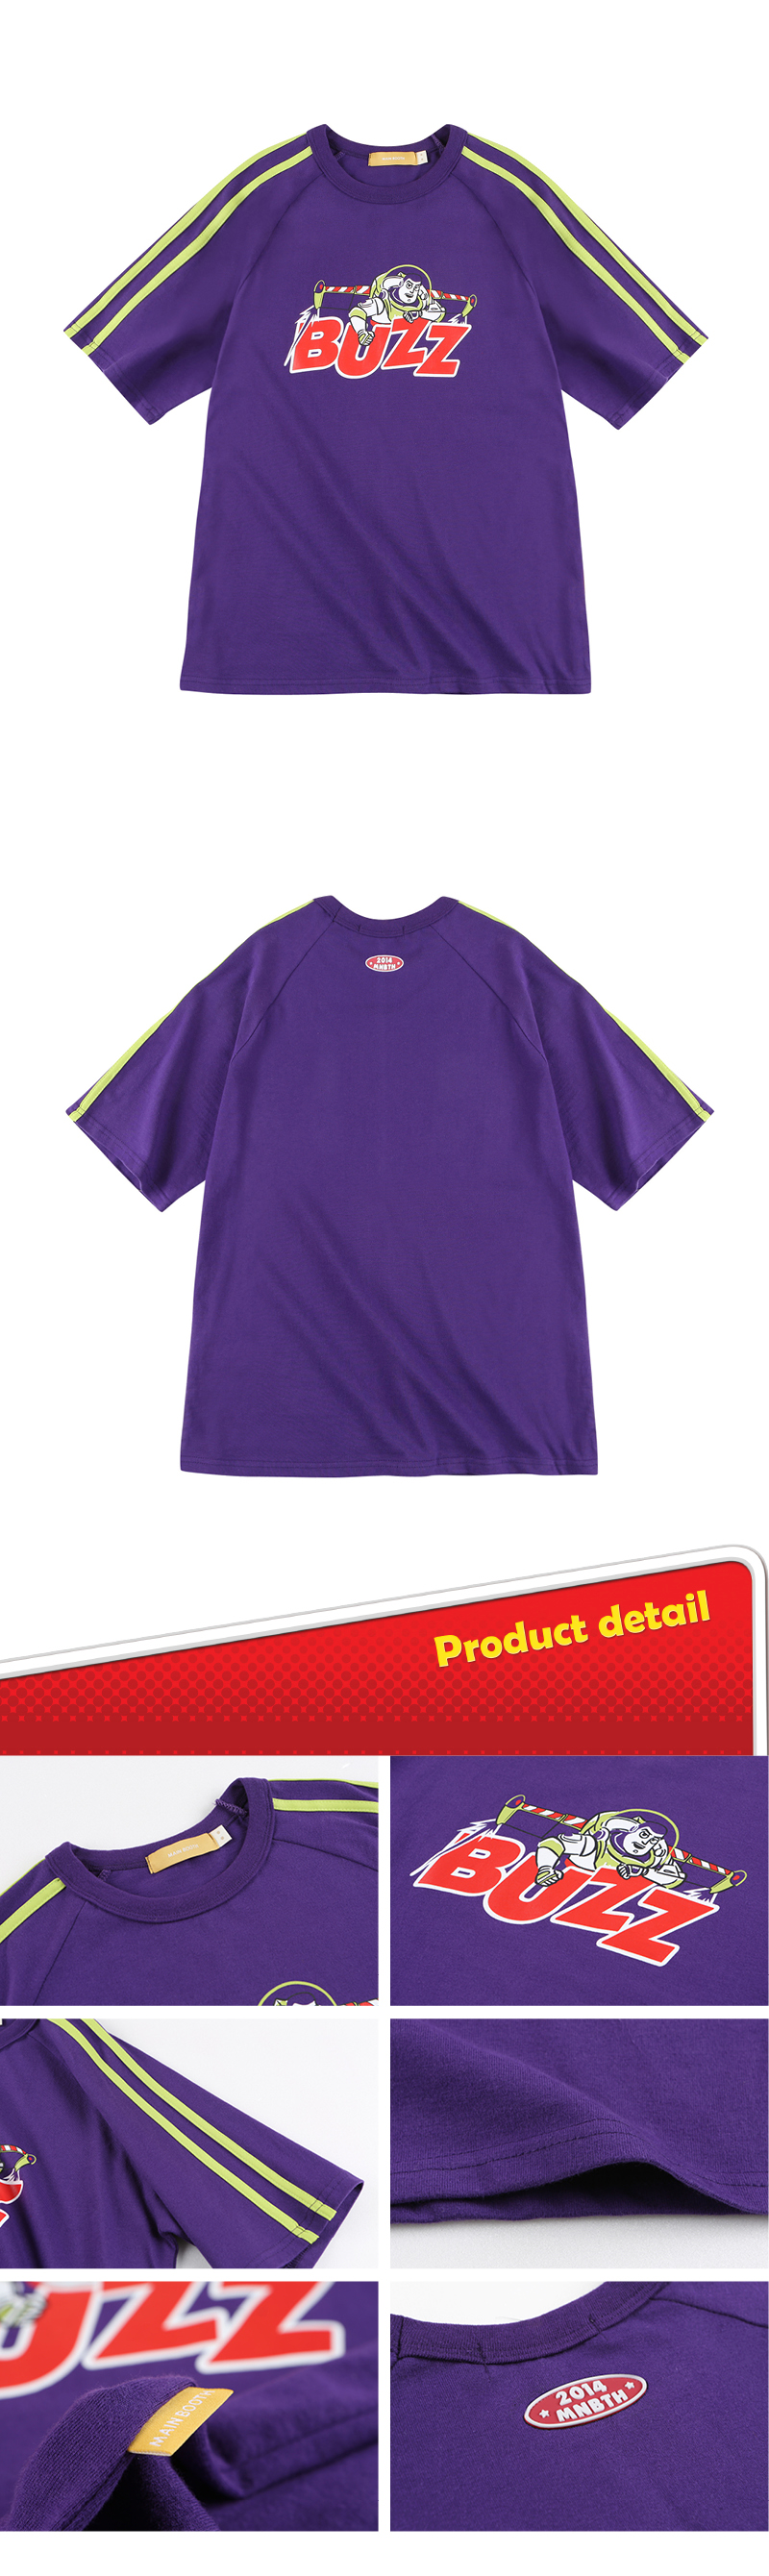 메인부스(MAINBOOTH) Toy Story Tape T-shirt(VIOLET)